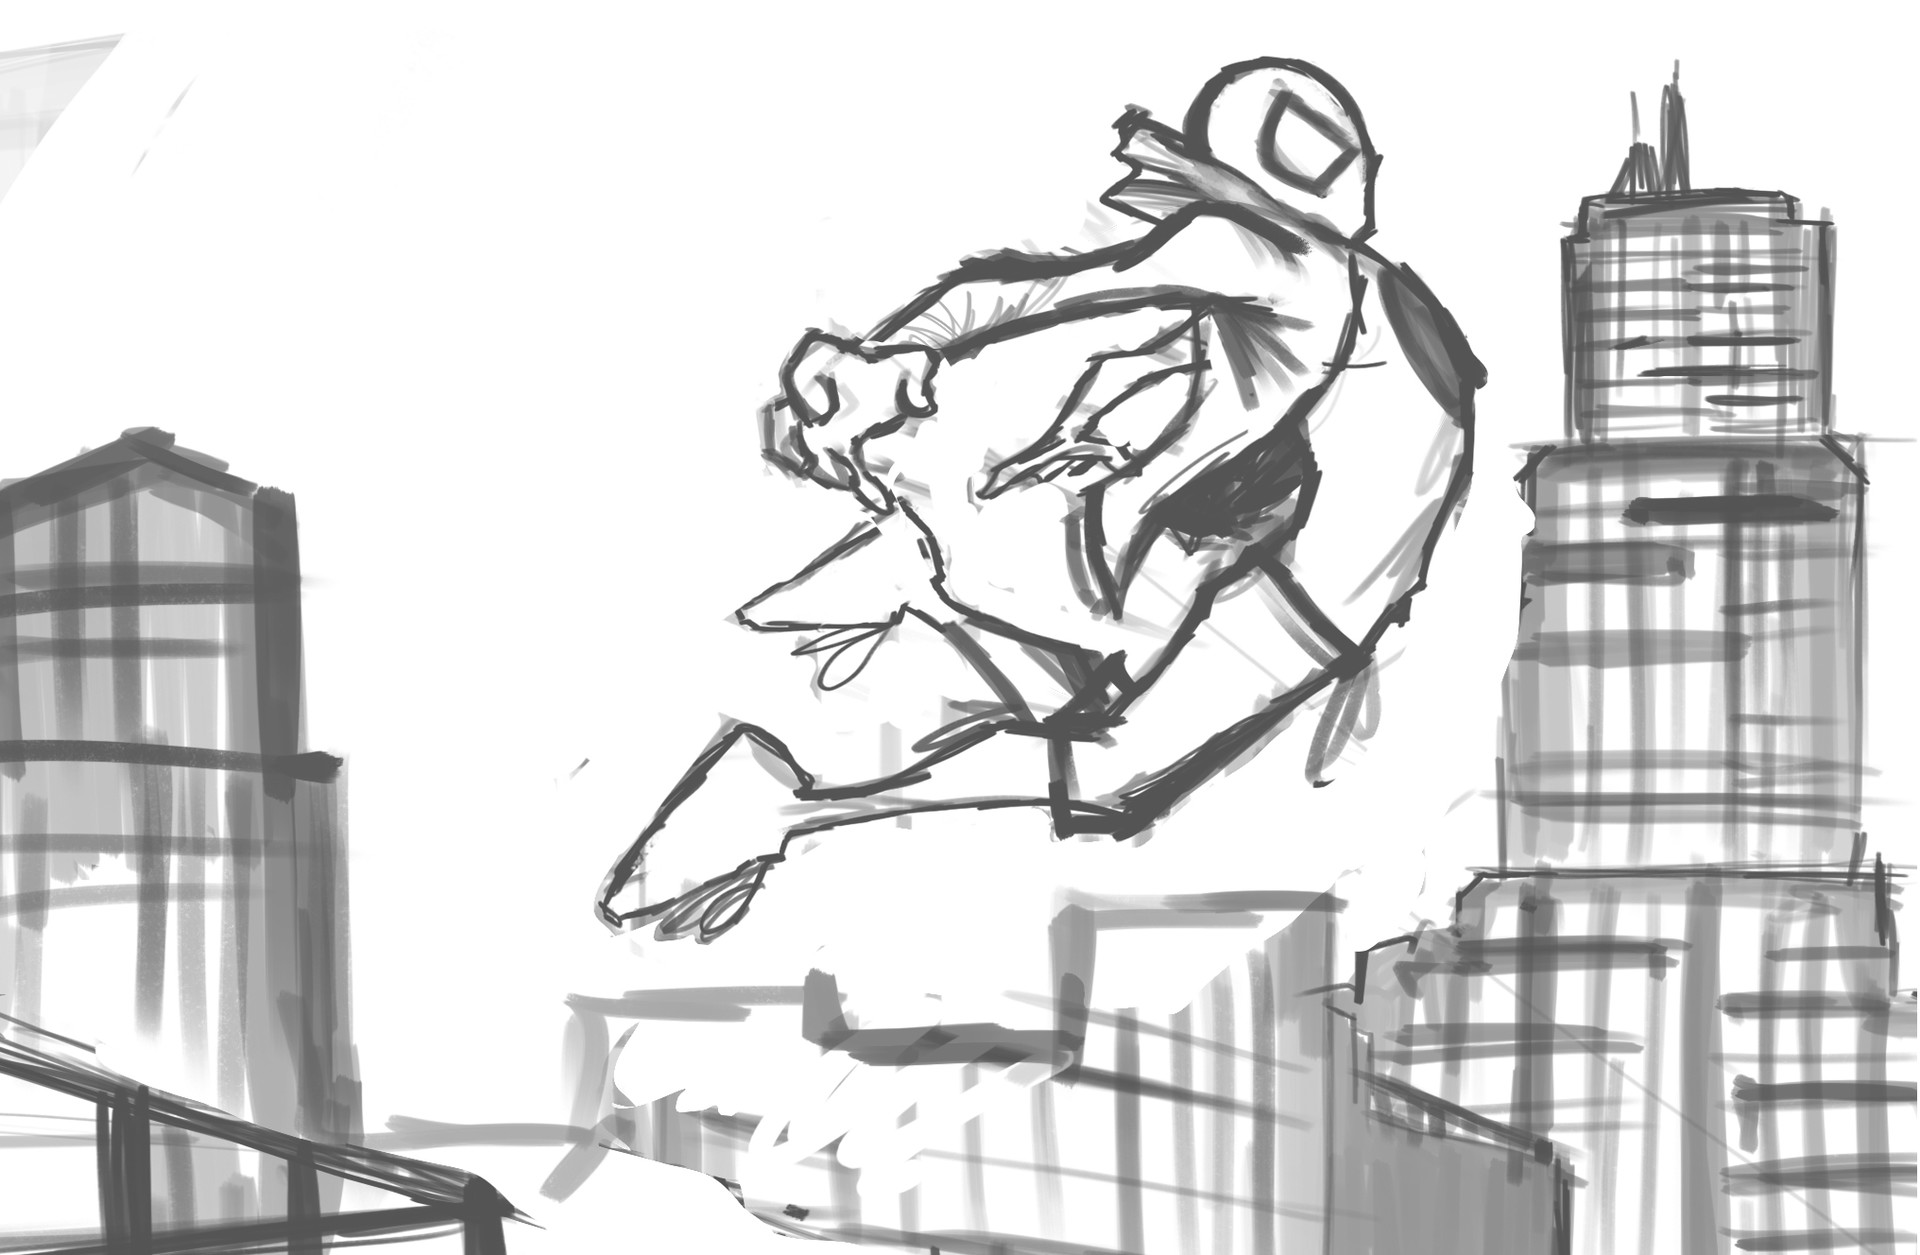 Gbenle maverick spiderverse rough